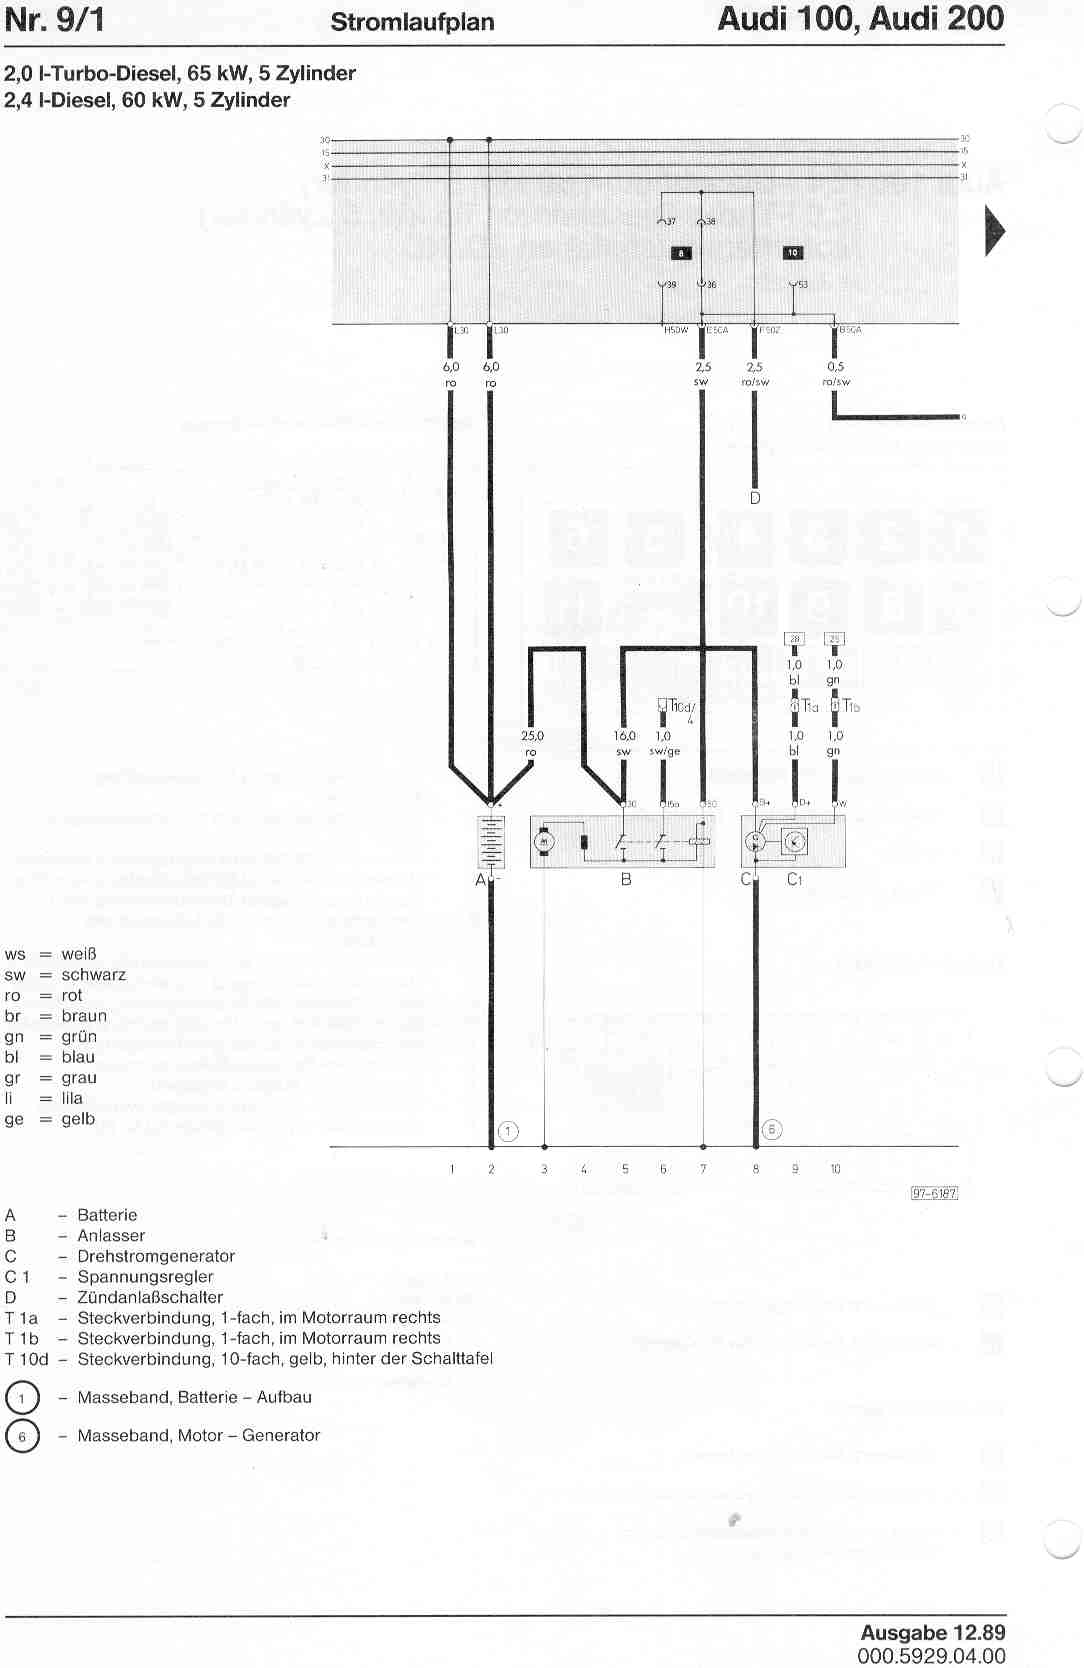 65 Kw Wire Diagrams Simple Guide About Wiring Diagram 10 Onan Audi 100 200 Factory Rh Sizov Org